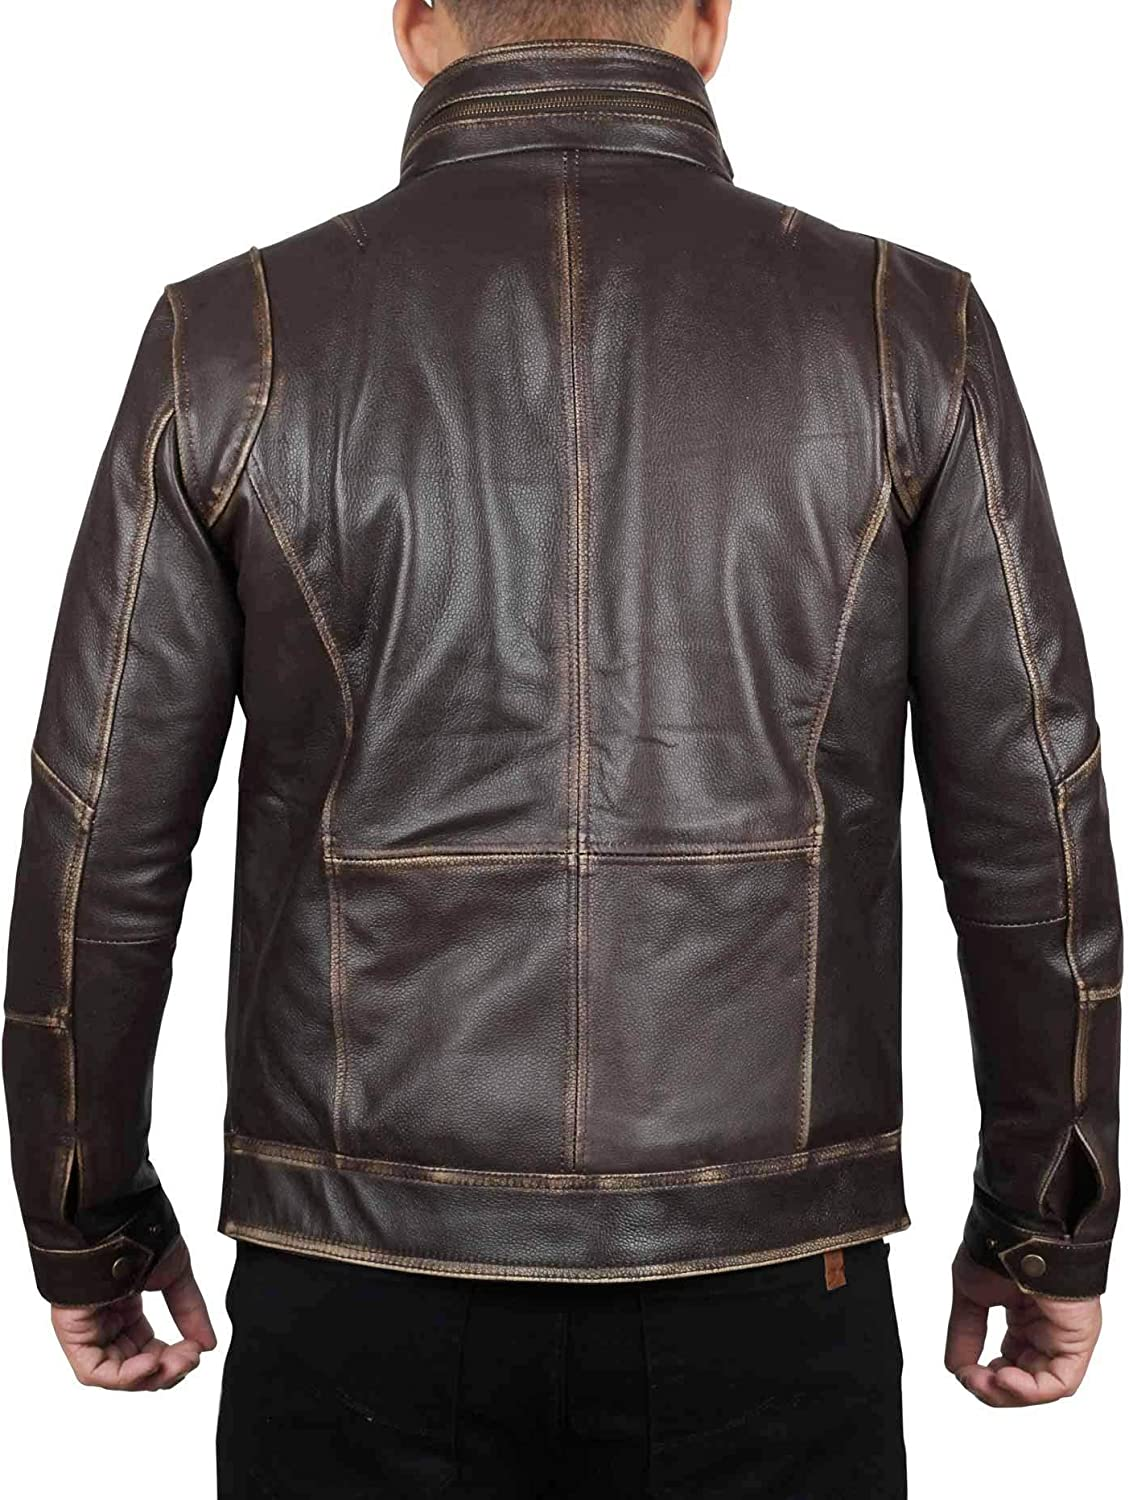 Black and Brown Leather Jacket - Real Lambskin Leather - Mutliple Pockets